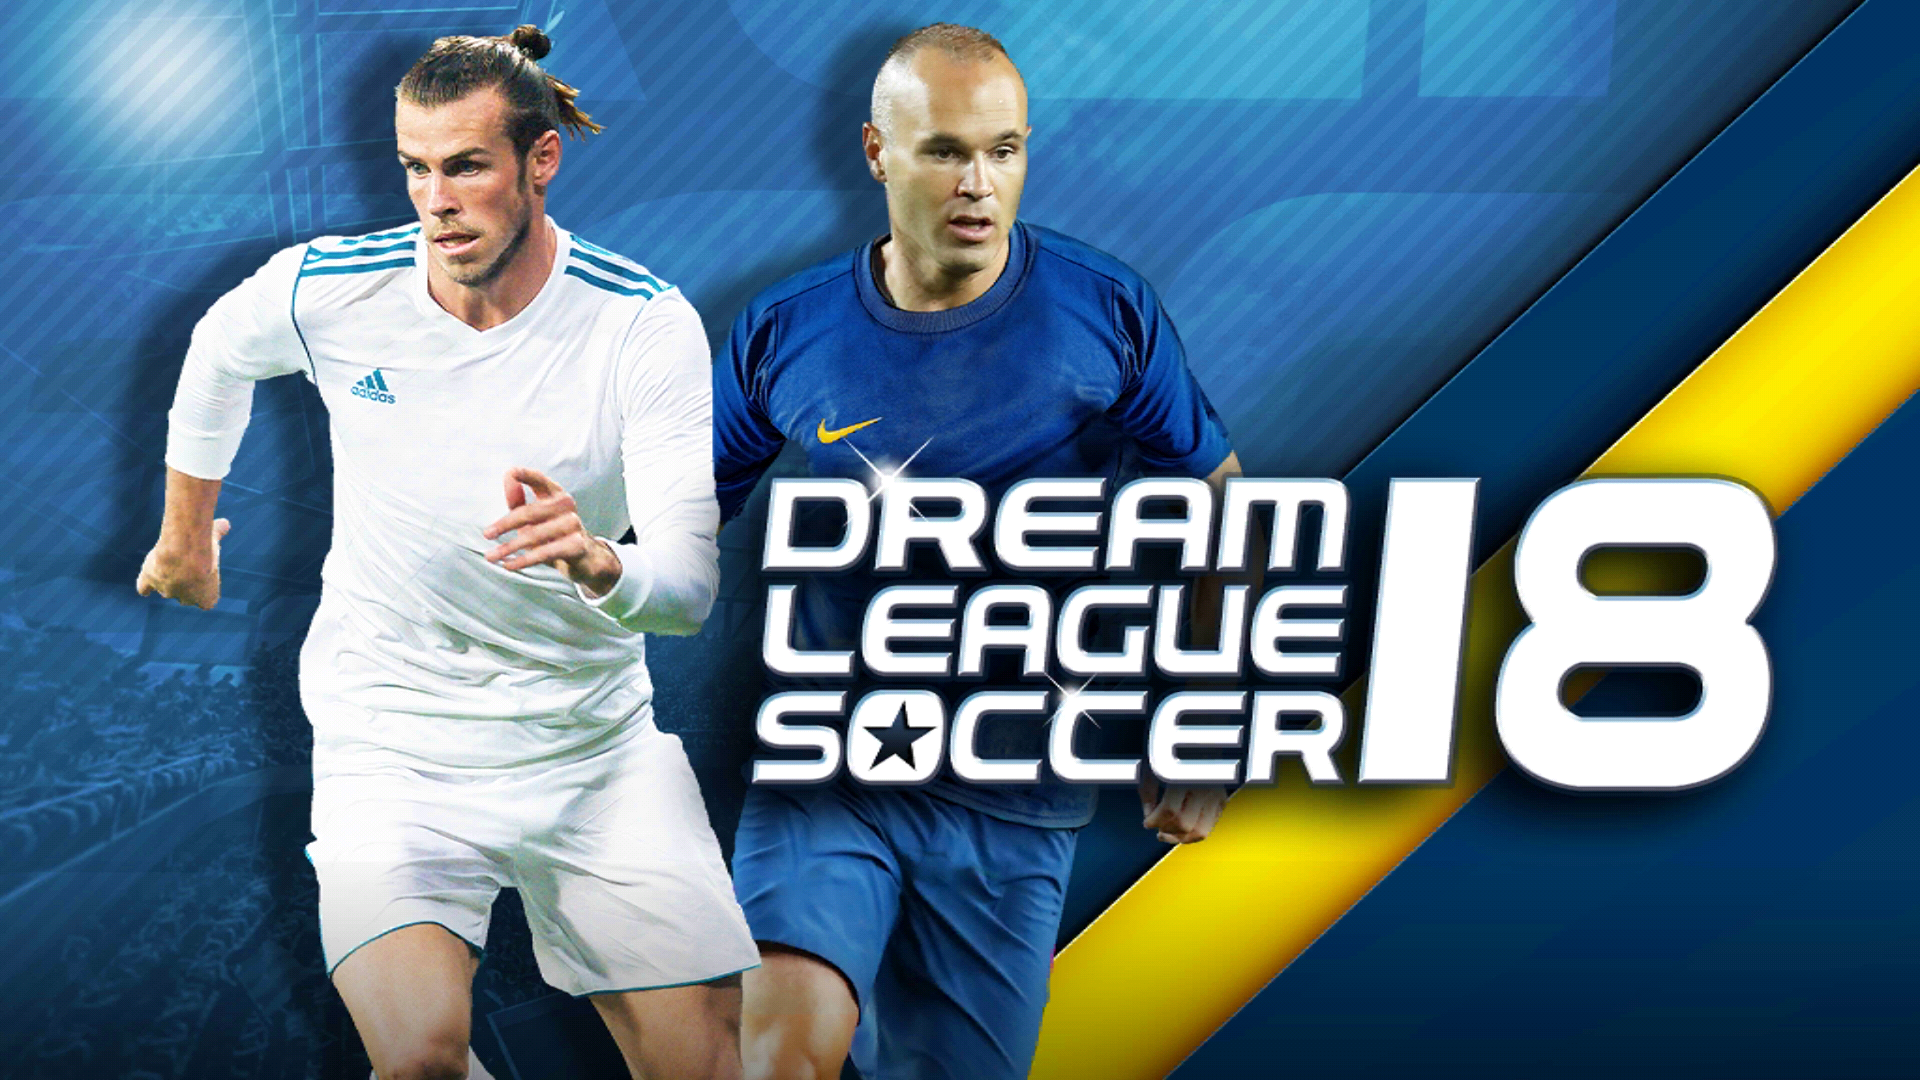 New Version Dream League Soccer Hack 2018 Get 1 Milion Coins And Unlock All Players To Win All Matches With Messi Soccer Kits Tool Hacks Soccer Training